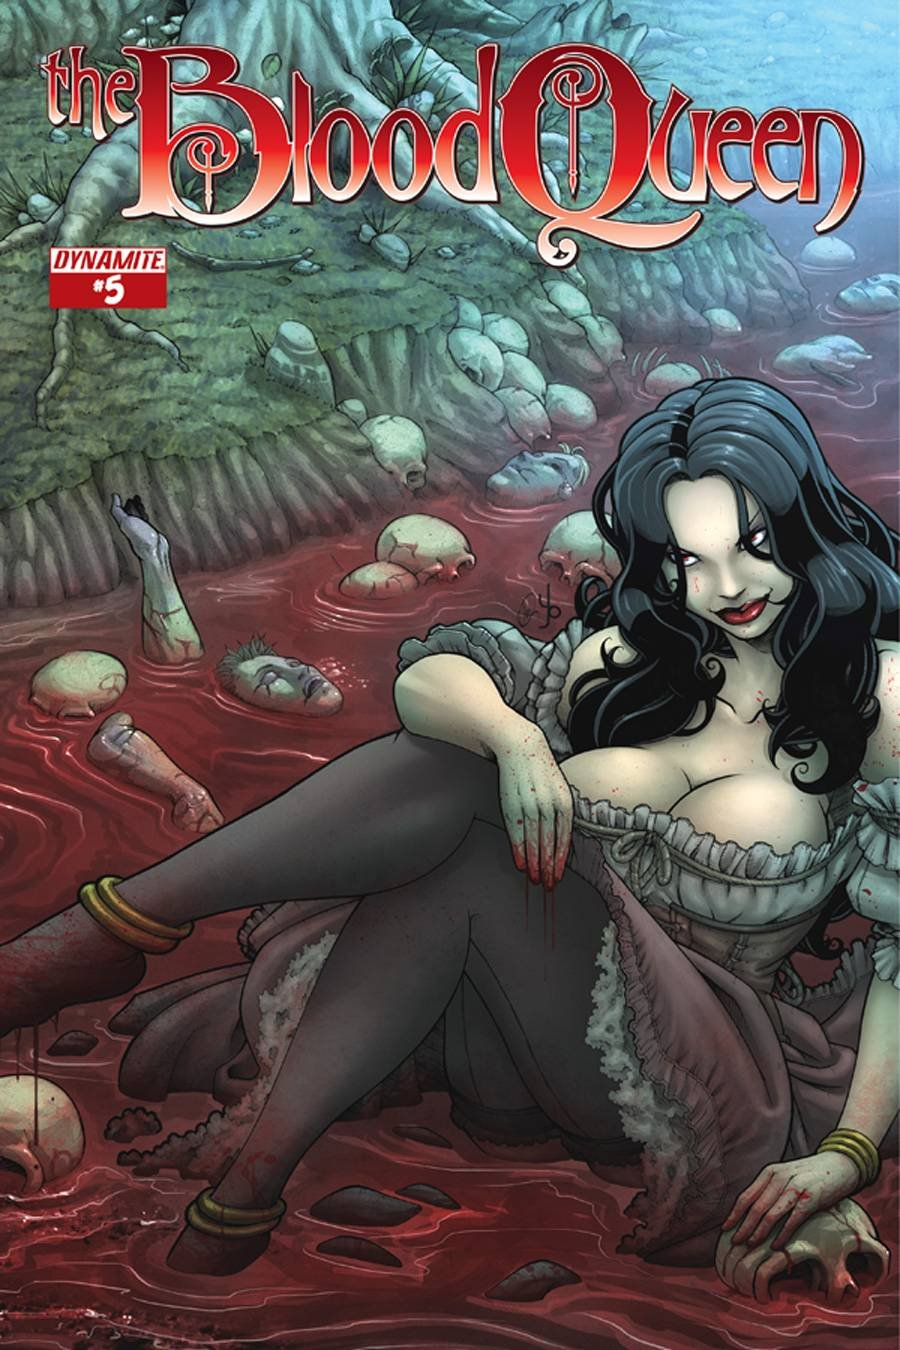 BLOOD QUEEN #5 (OF 6) VARIANT COVER B ebook